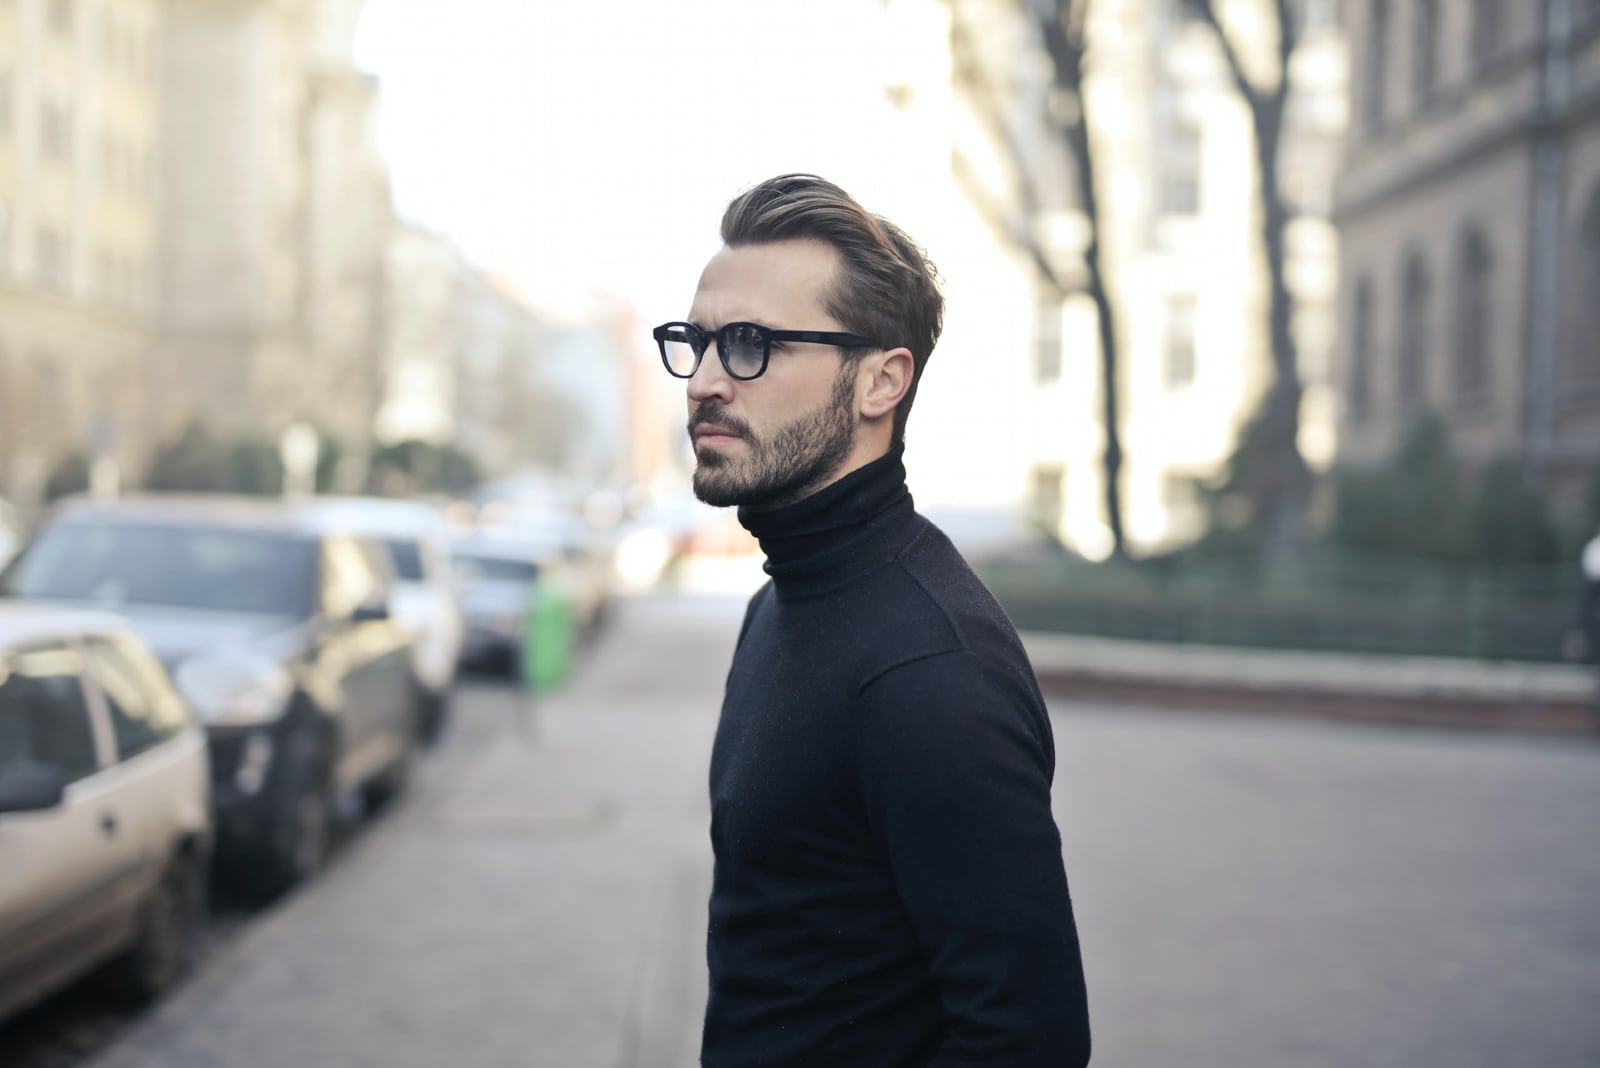 man in black turtleneck shirt standing on the street